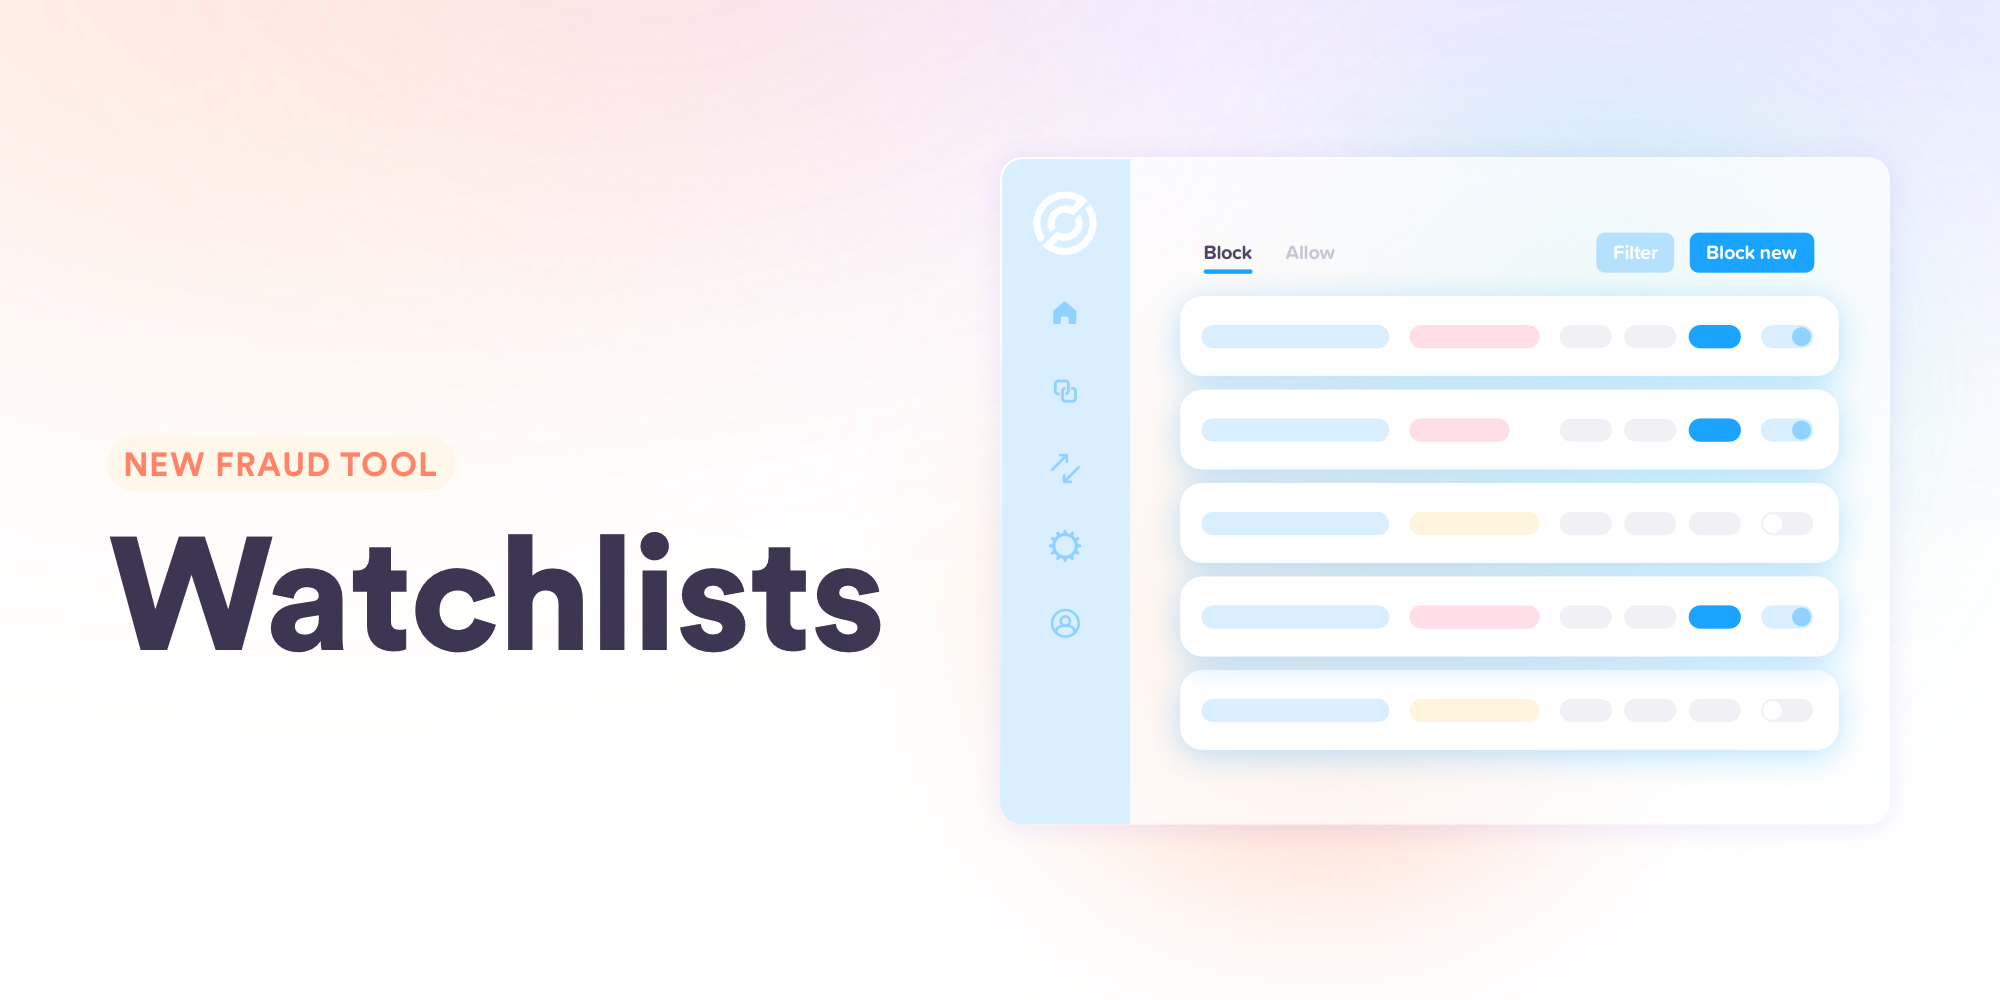 Announcing Watchlists: A new fraud management tool to make customer experiences safer and smoother